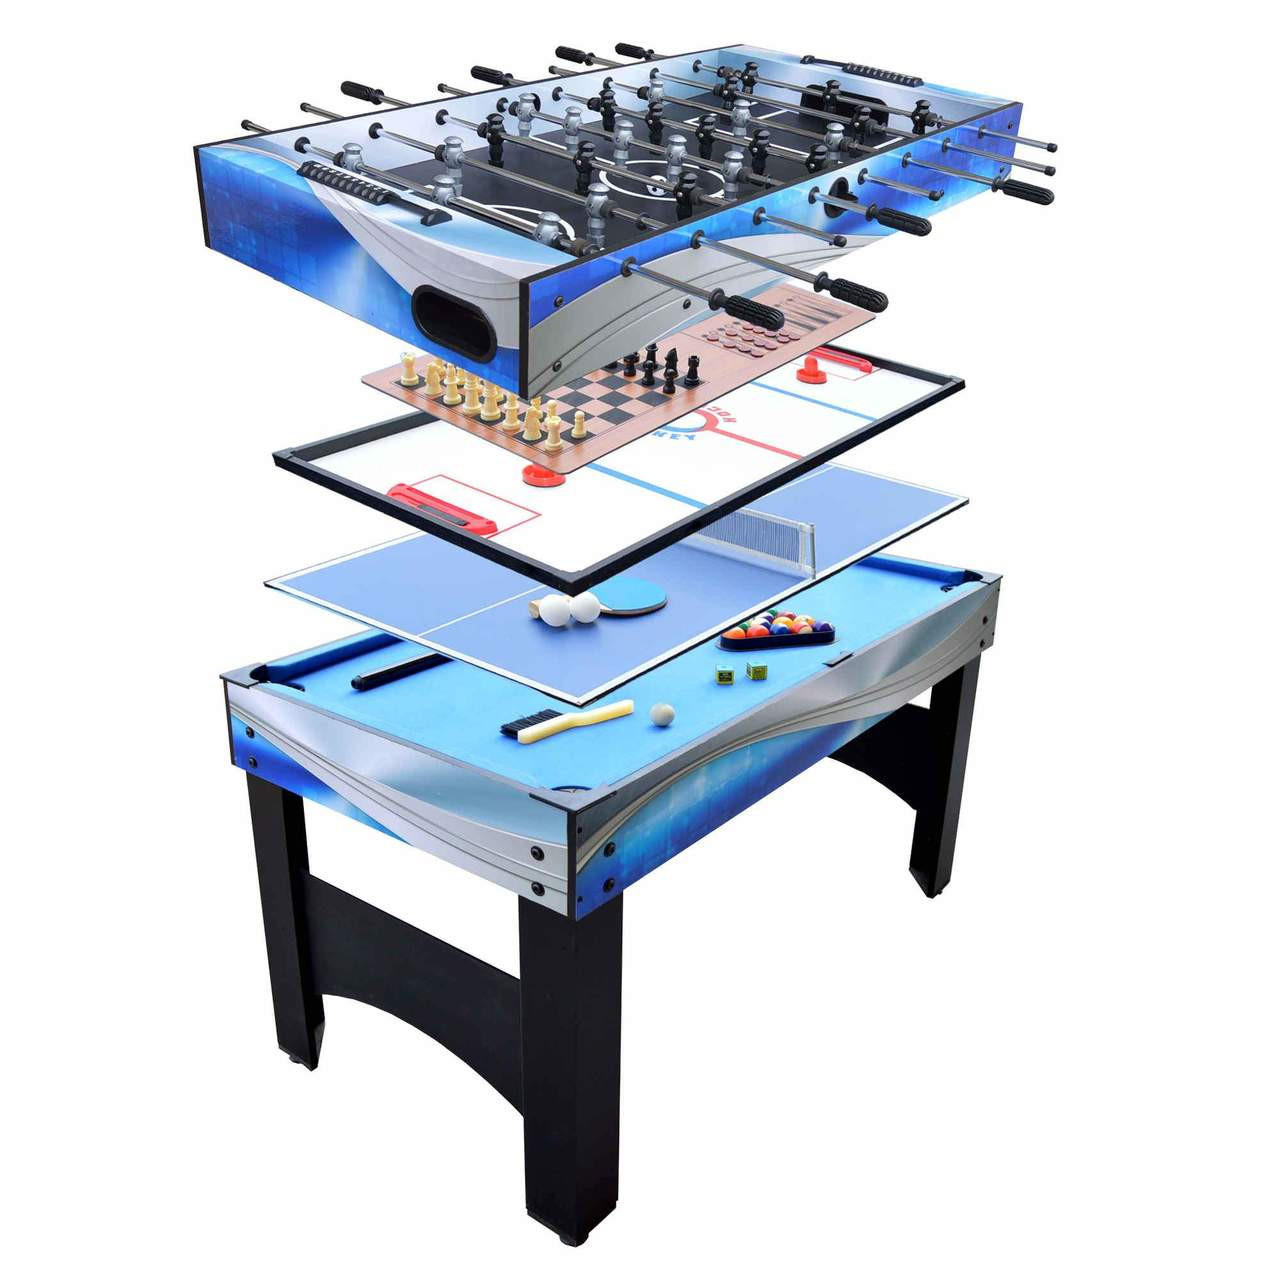 Matrix 54-In 7-in-1 Multi Game Table with Foosball, Pool, Glide Hockey, Table Tennis, Chess, Checkers and Backgammon  FO-1080